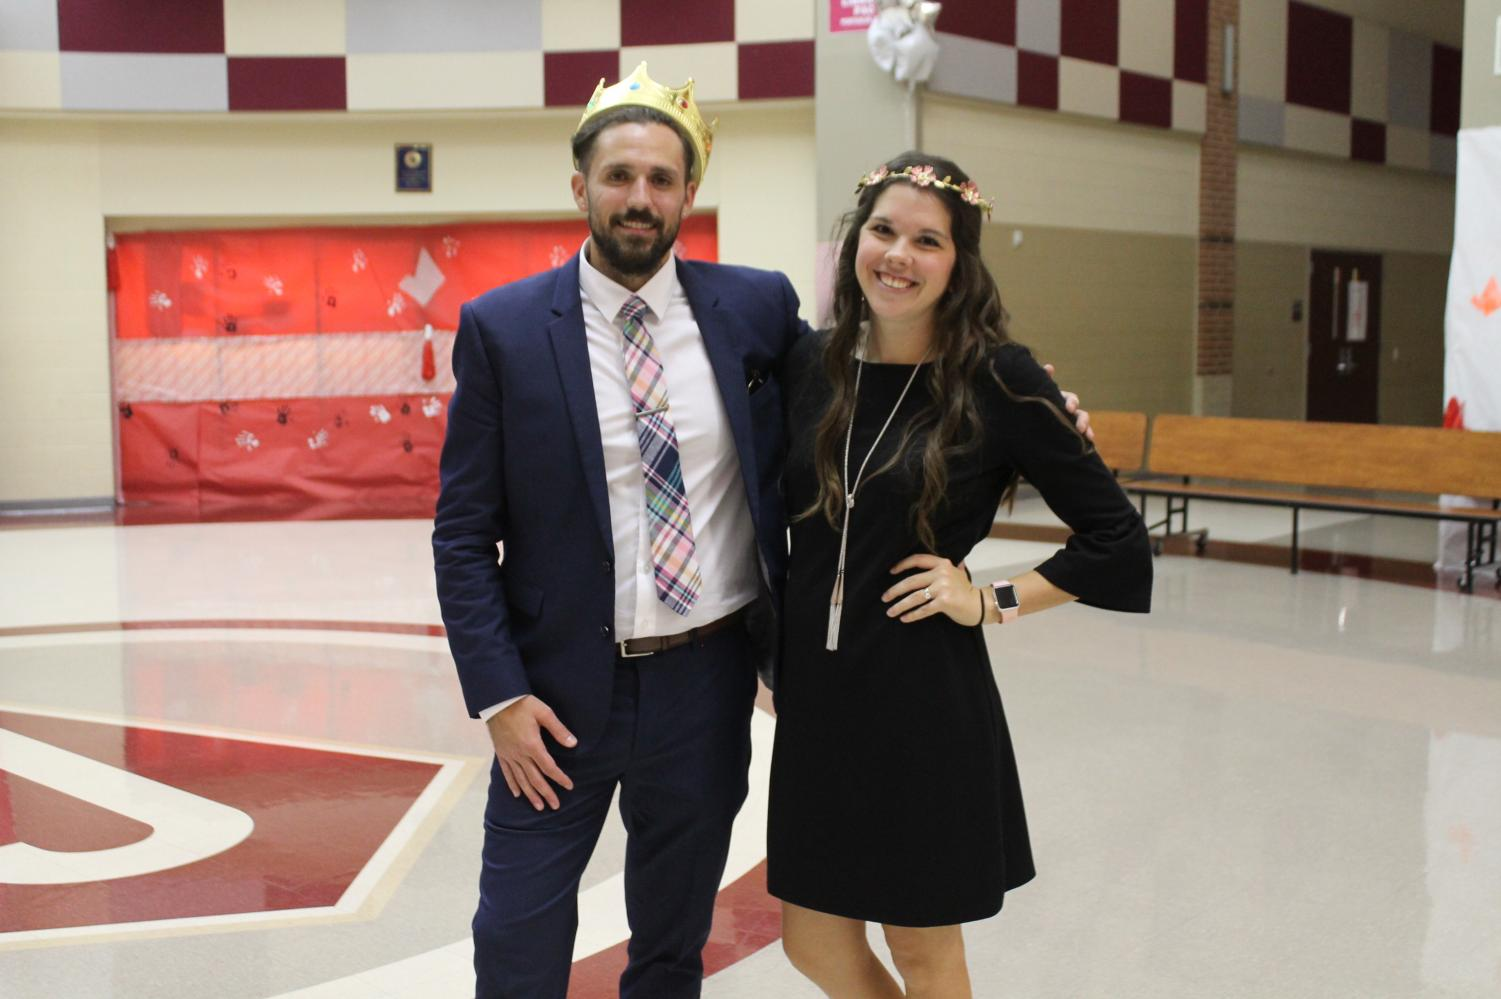 Mrs. Mallory Tesch and Mr. Dylan Stephens posed together for their first picture as royalty.